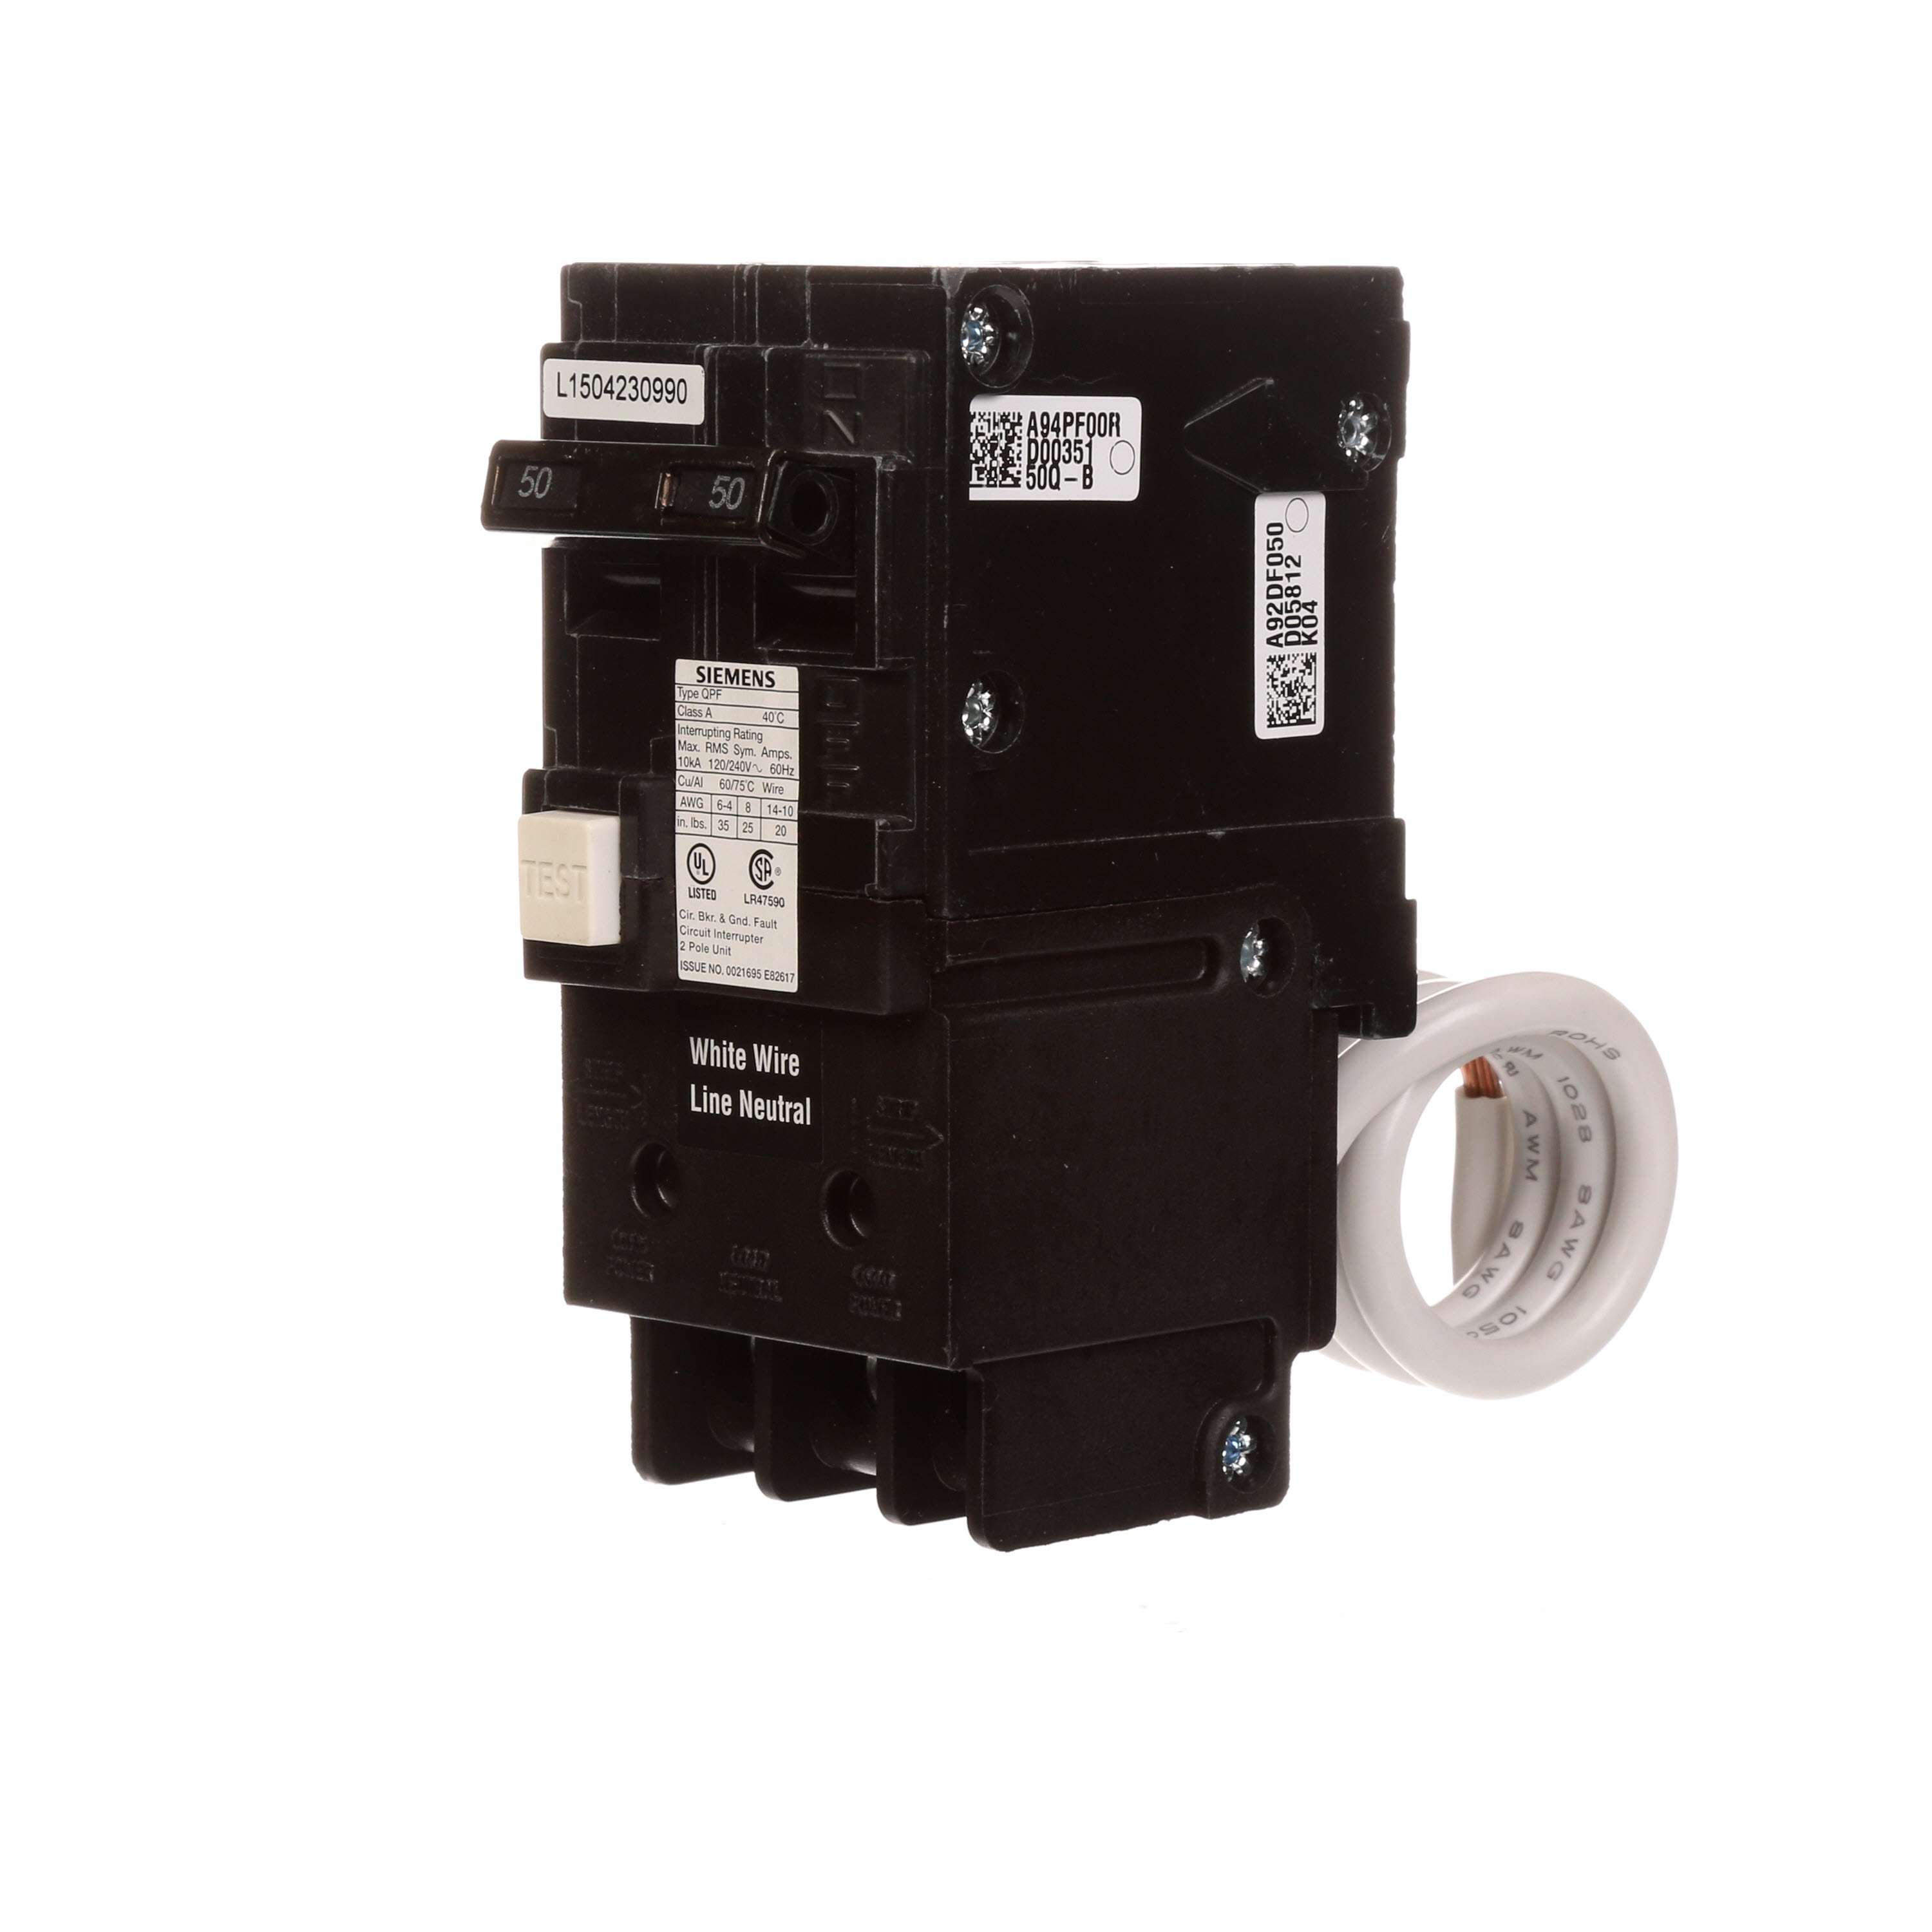 Distribution Equipment Circuit Breakers Ground Arc Fault Breaker How Does A Gfci Work Sie Qf250 2p 50a 120 240v Gfi Cb